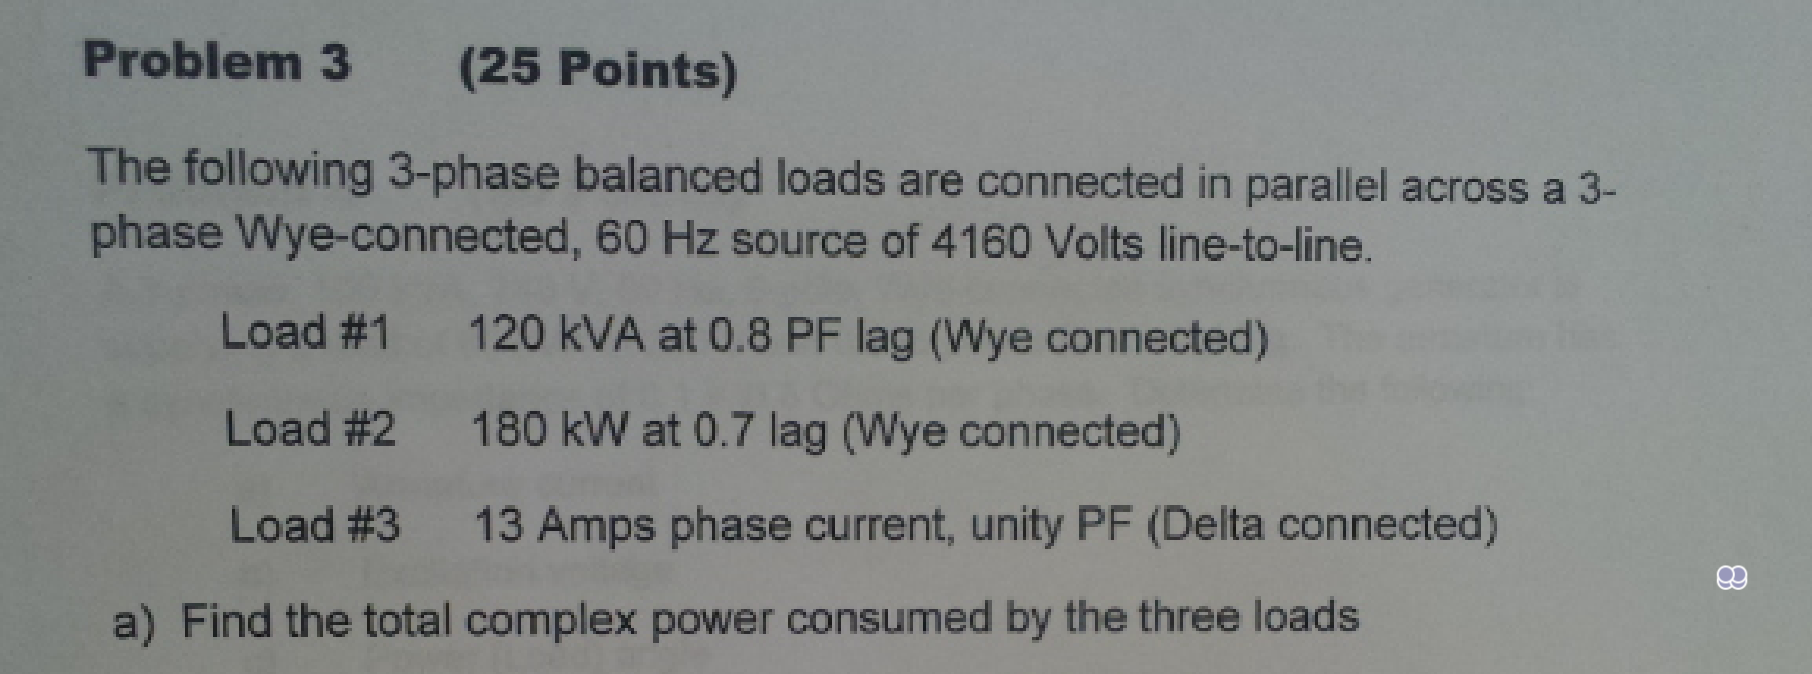 The following 3-phase balanced loads are connected